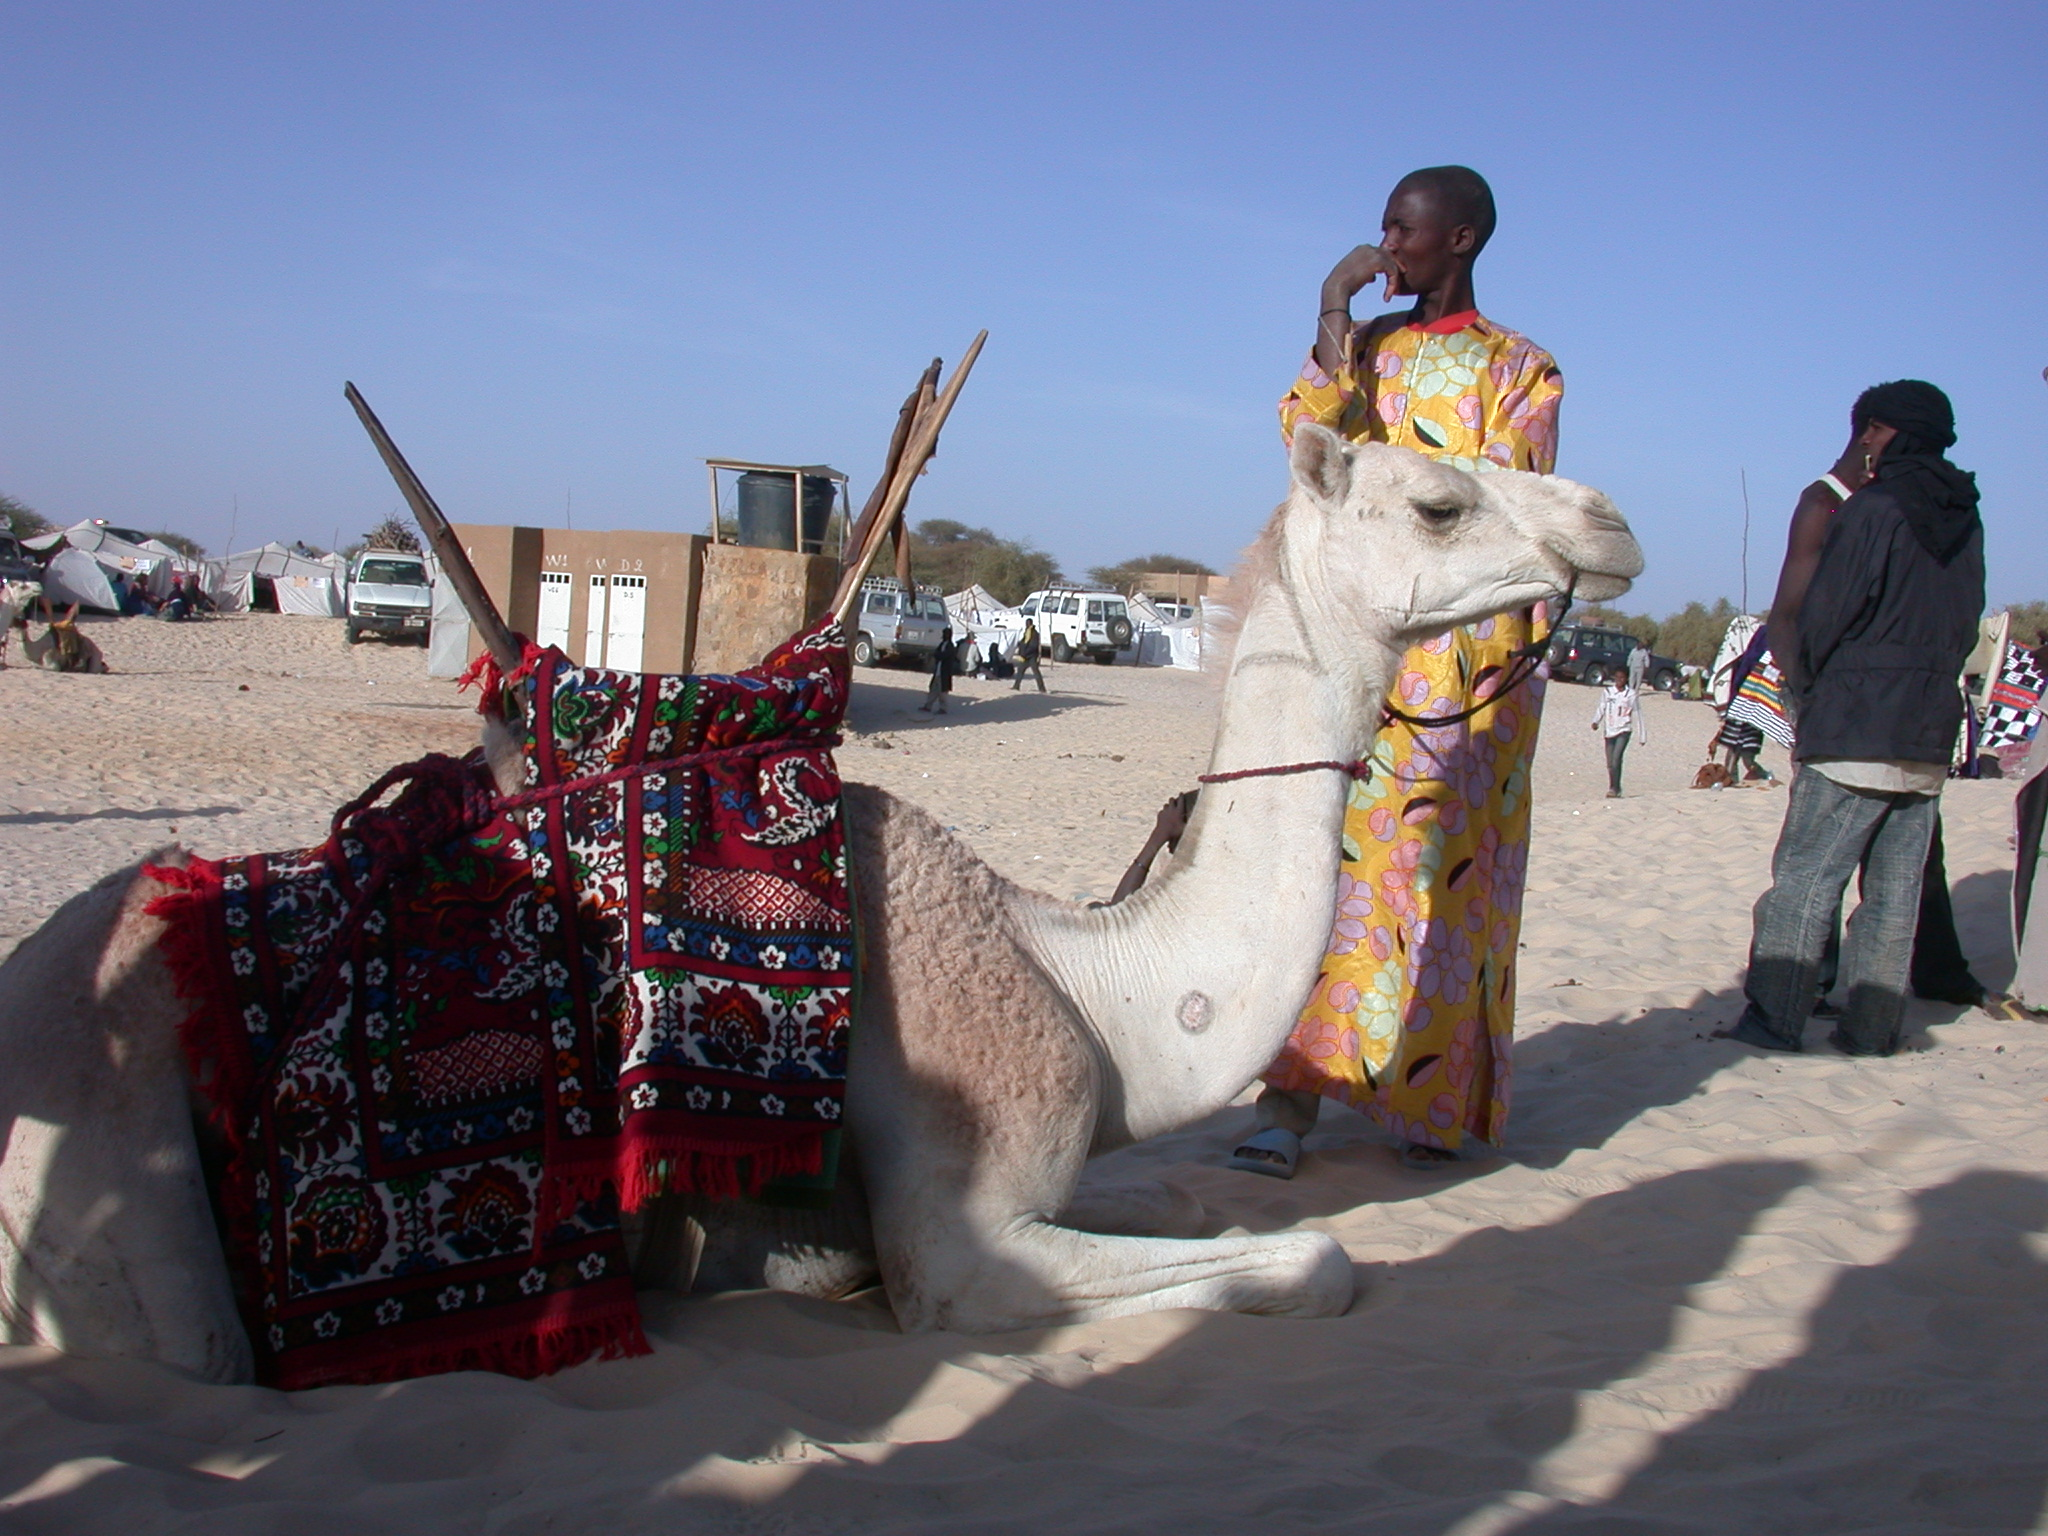 Seated Camel With Ornate Saddle and Colorfully Dressed Rider, Festival in the Desert, Essakane, Mali